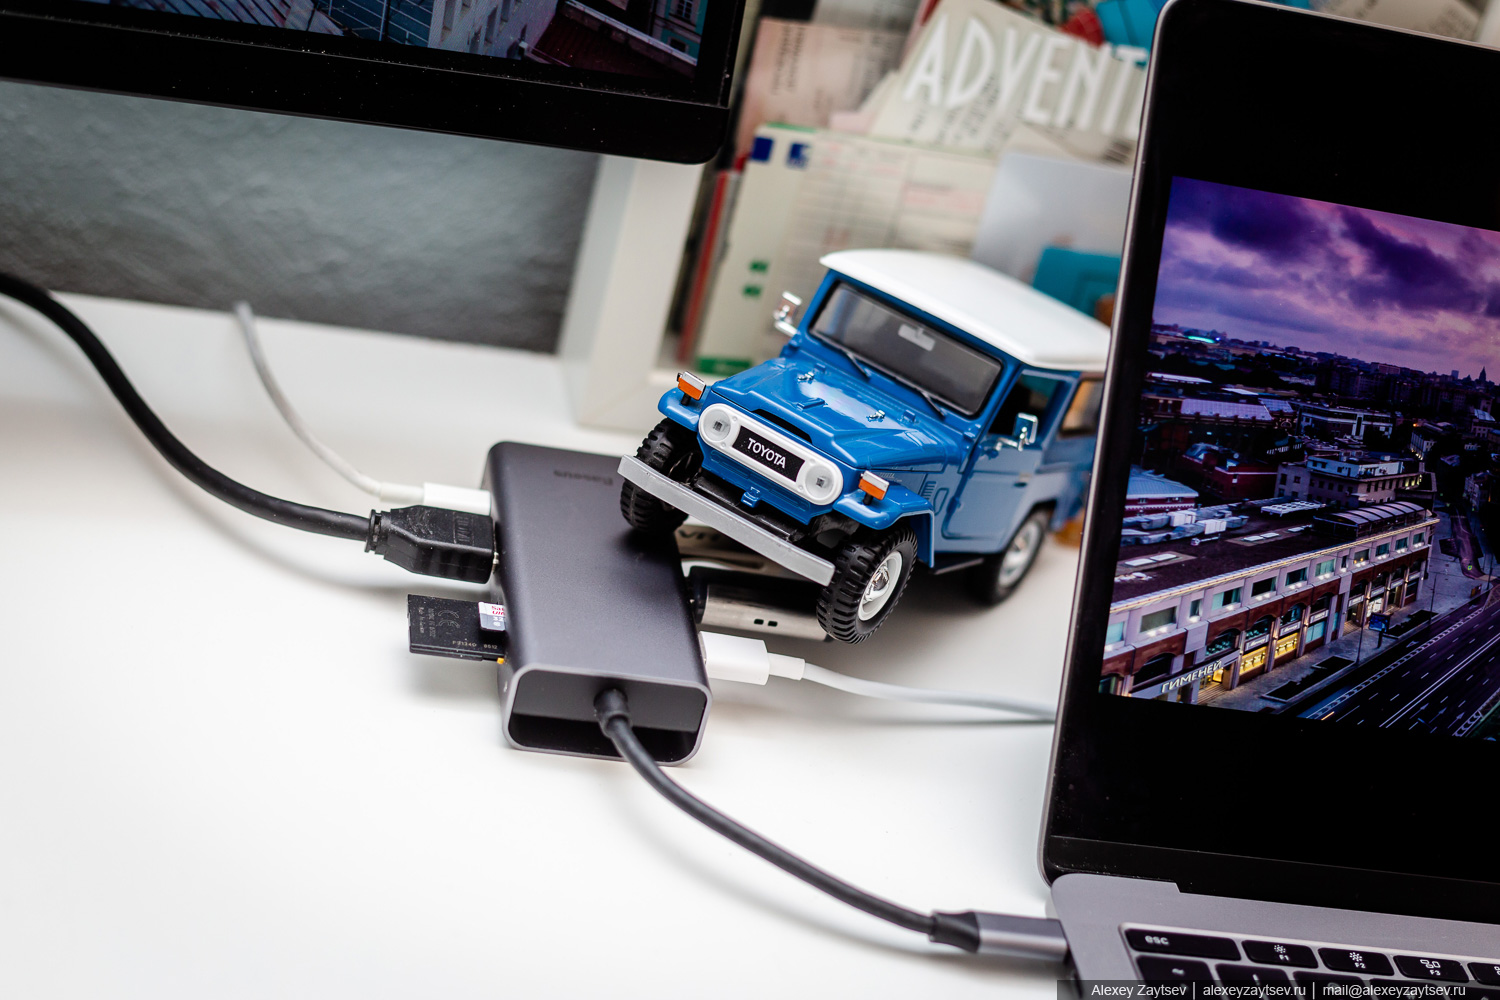 Baseus Square desk type-c multi-functional hub обзор тест хаб для макбука usb HDMI vga sd microsd